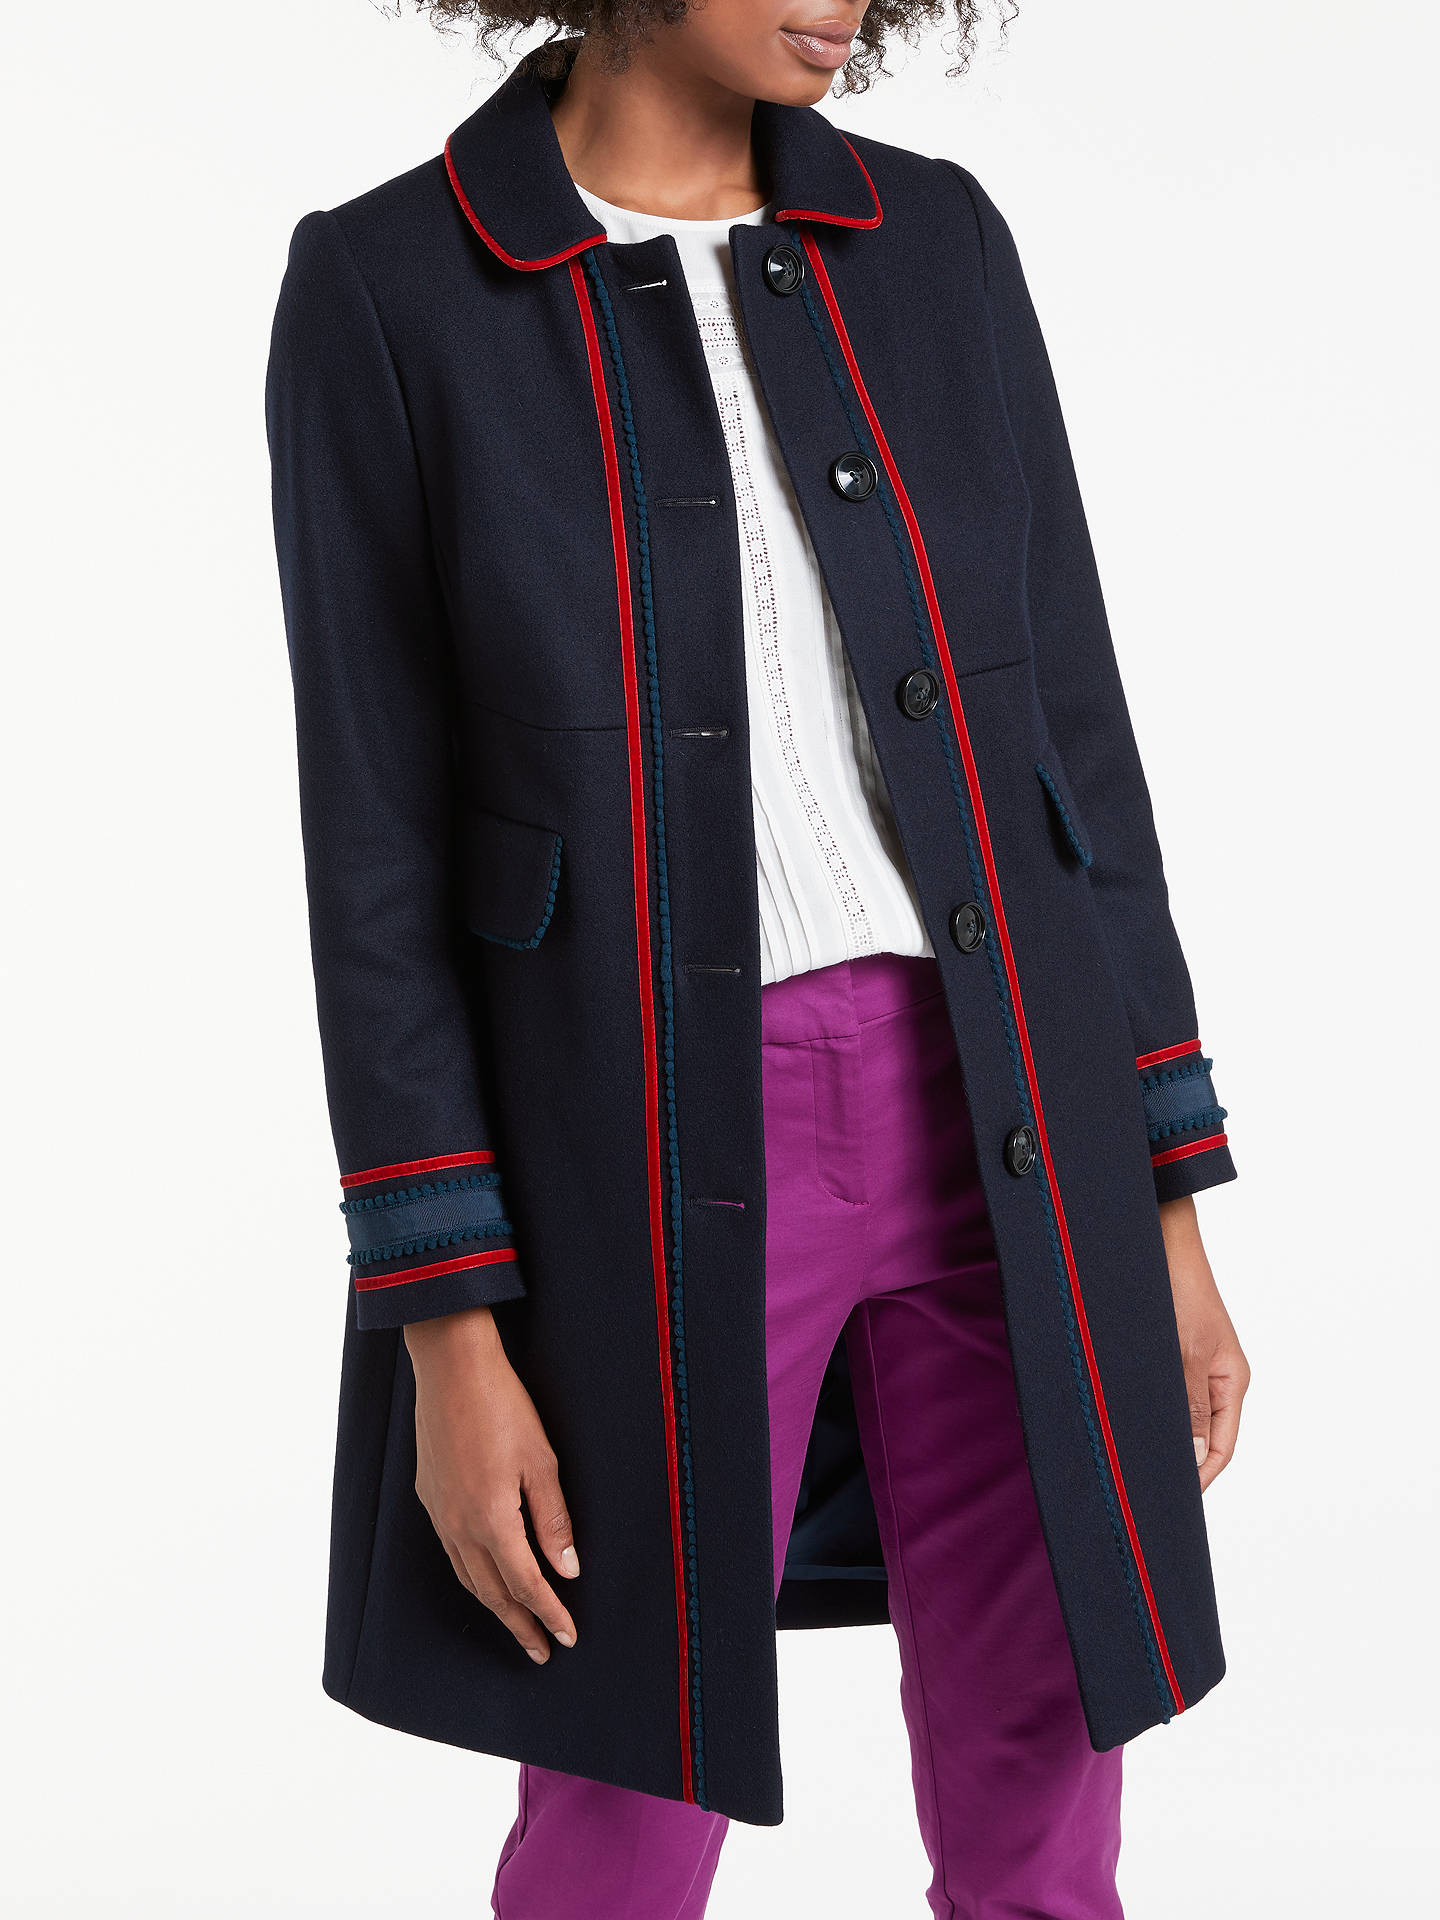 Boden Coats and Jackets for Women for sale | eBay